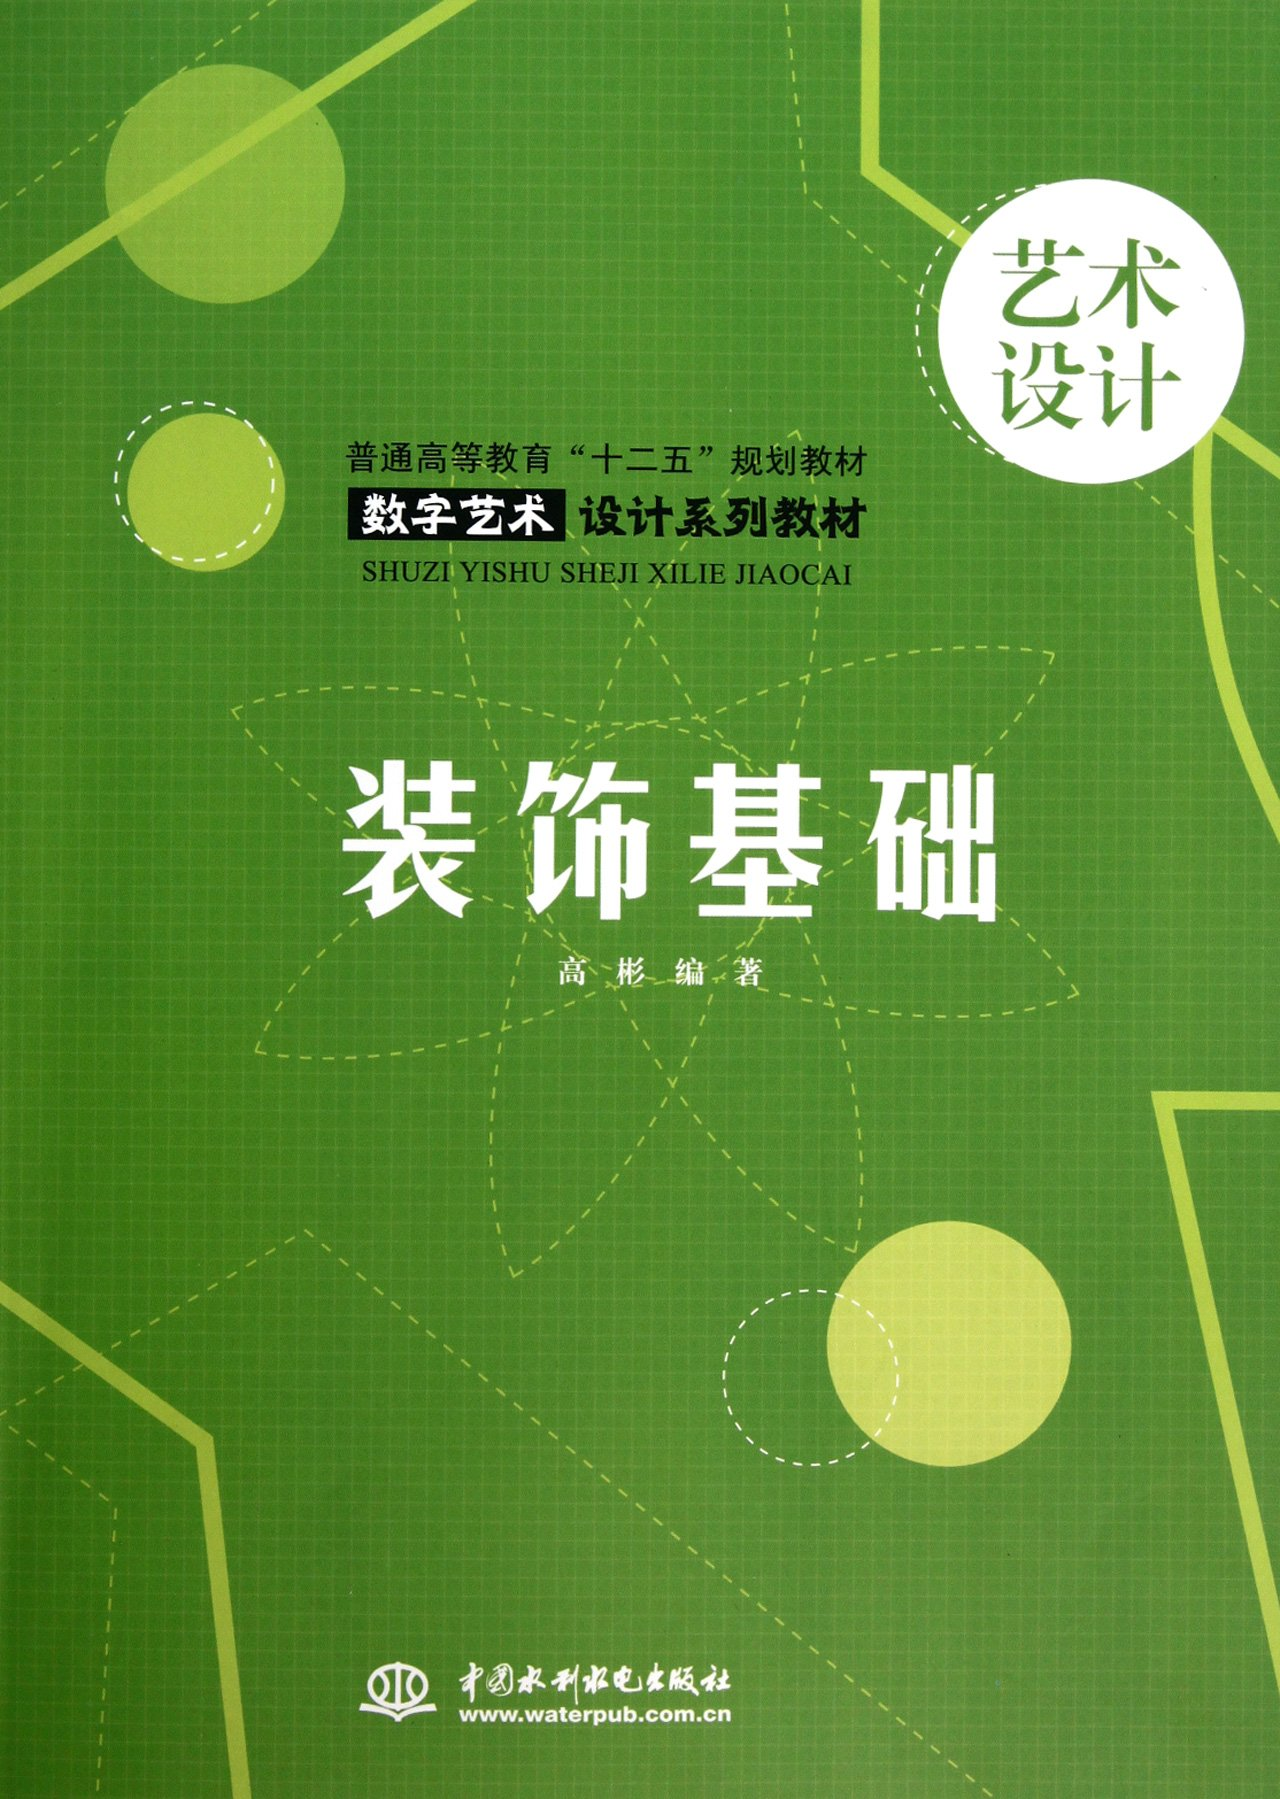 Download Decoration Fundamentals(General Higher Education Twelfth Five-Year Planned Textbook Digital Art and Design Textbook Series) (Chinese Edition) PDF